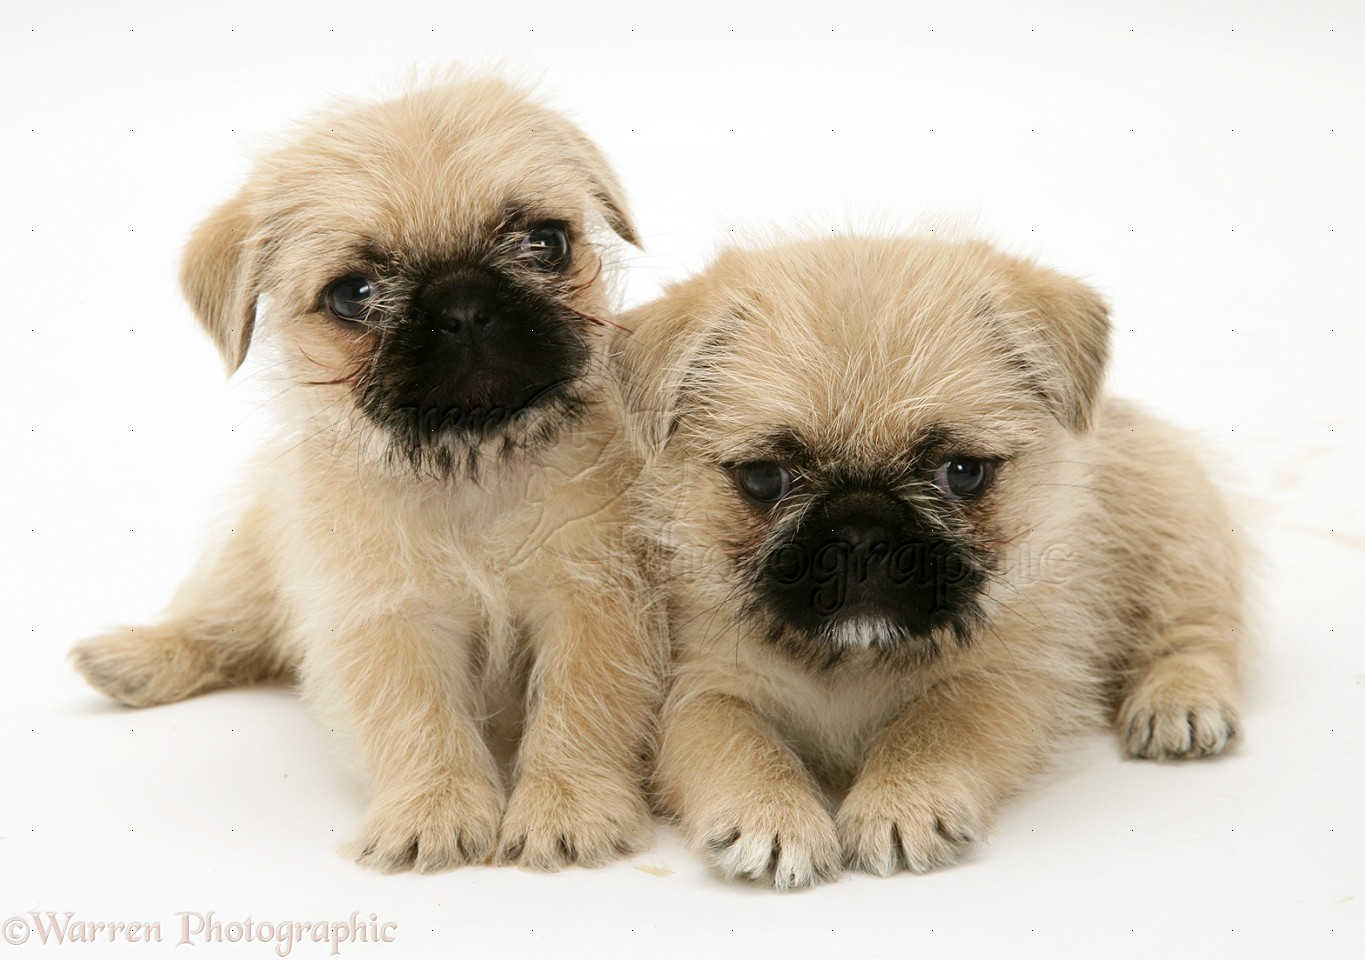 Dogs Pugzu Pug X Shih Tzu Pups Photo Wp10928